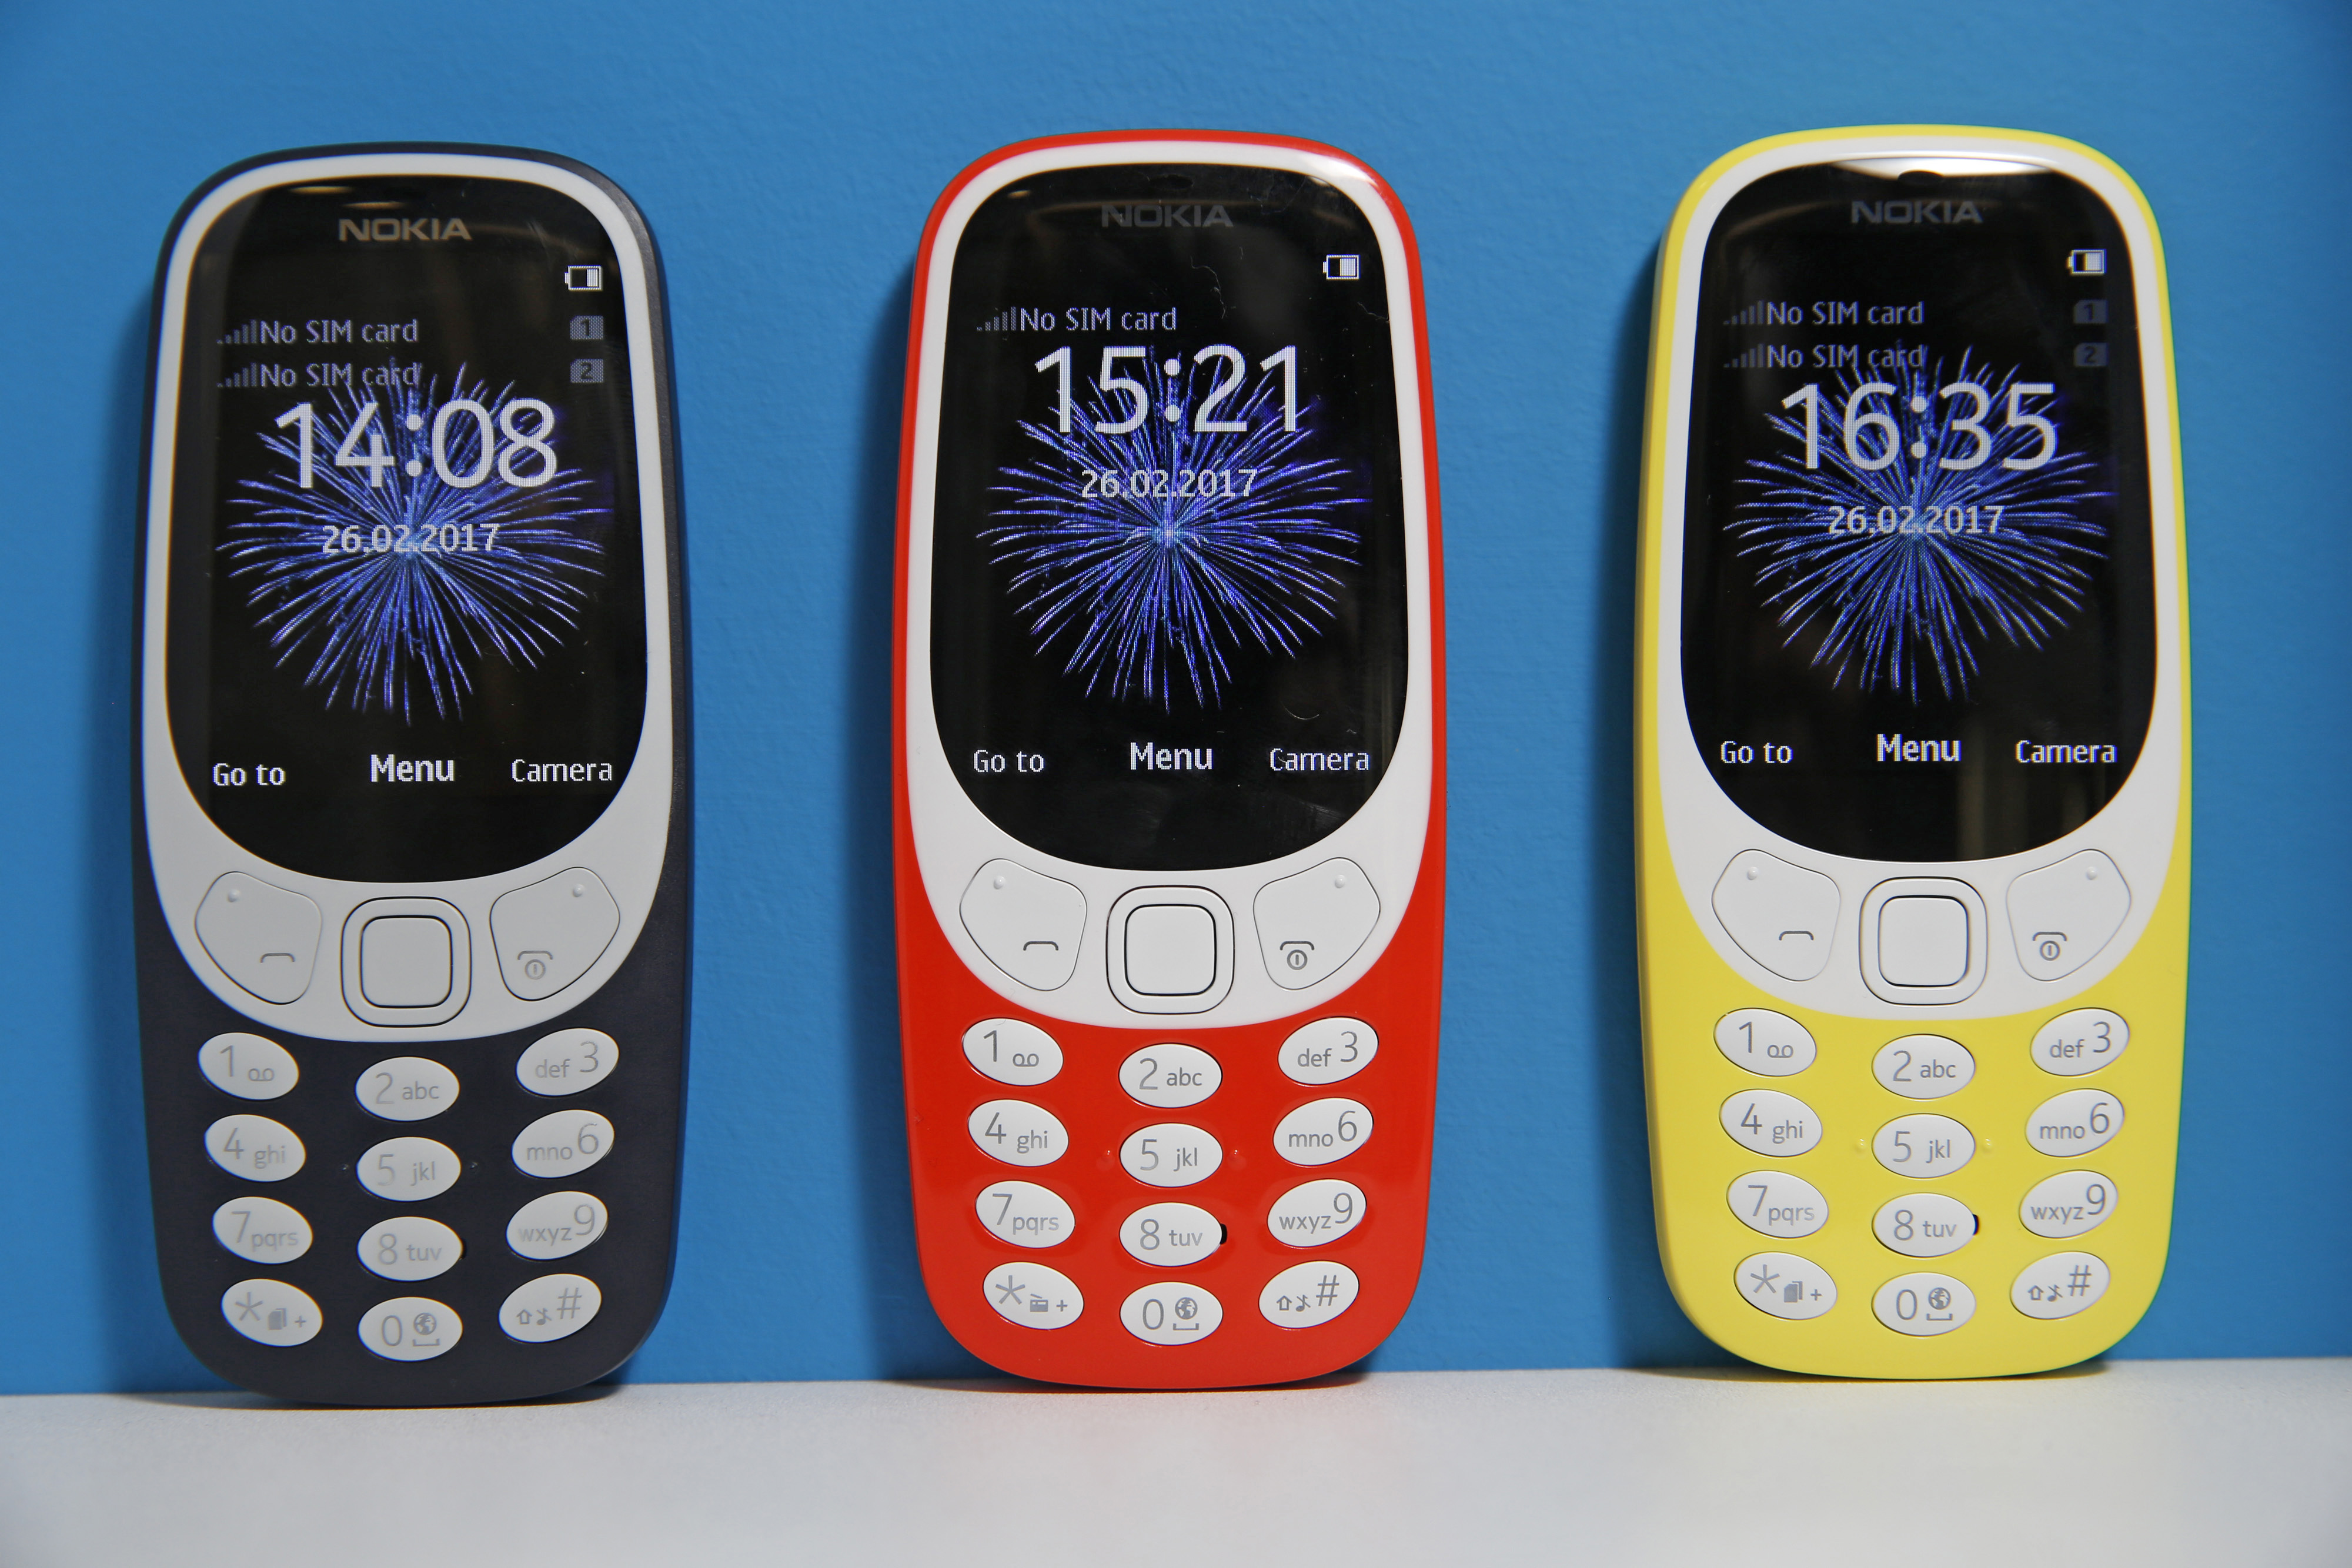 The new Nokia 3310 mobile phone, developed by HMD Global OY, on display during in London, on Feb. 24, 2017.